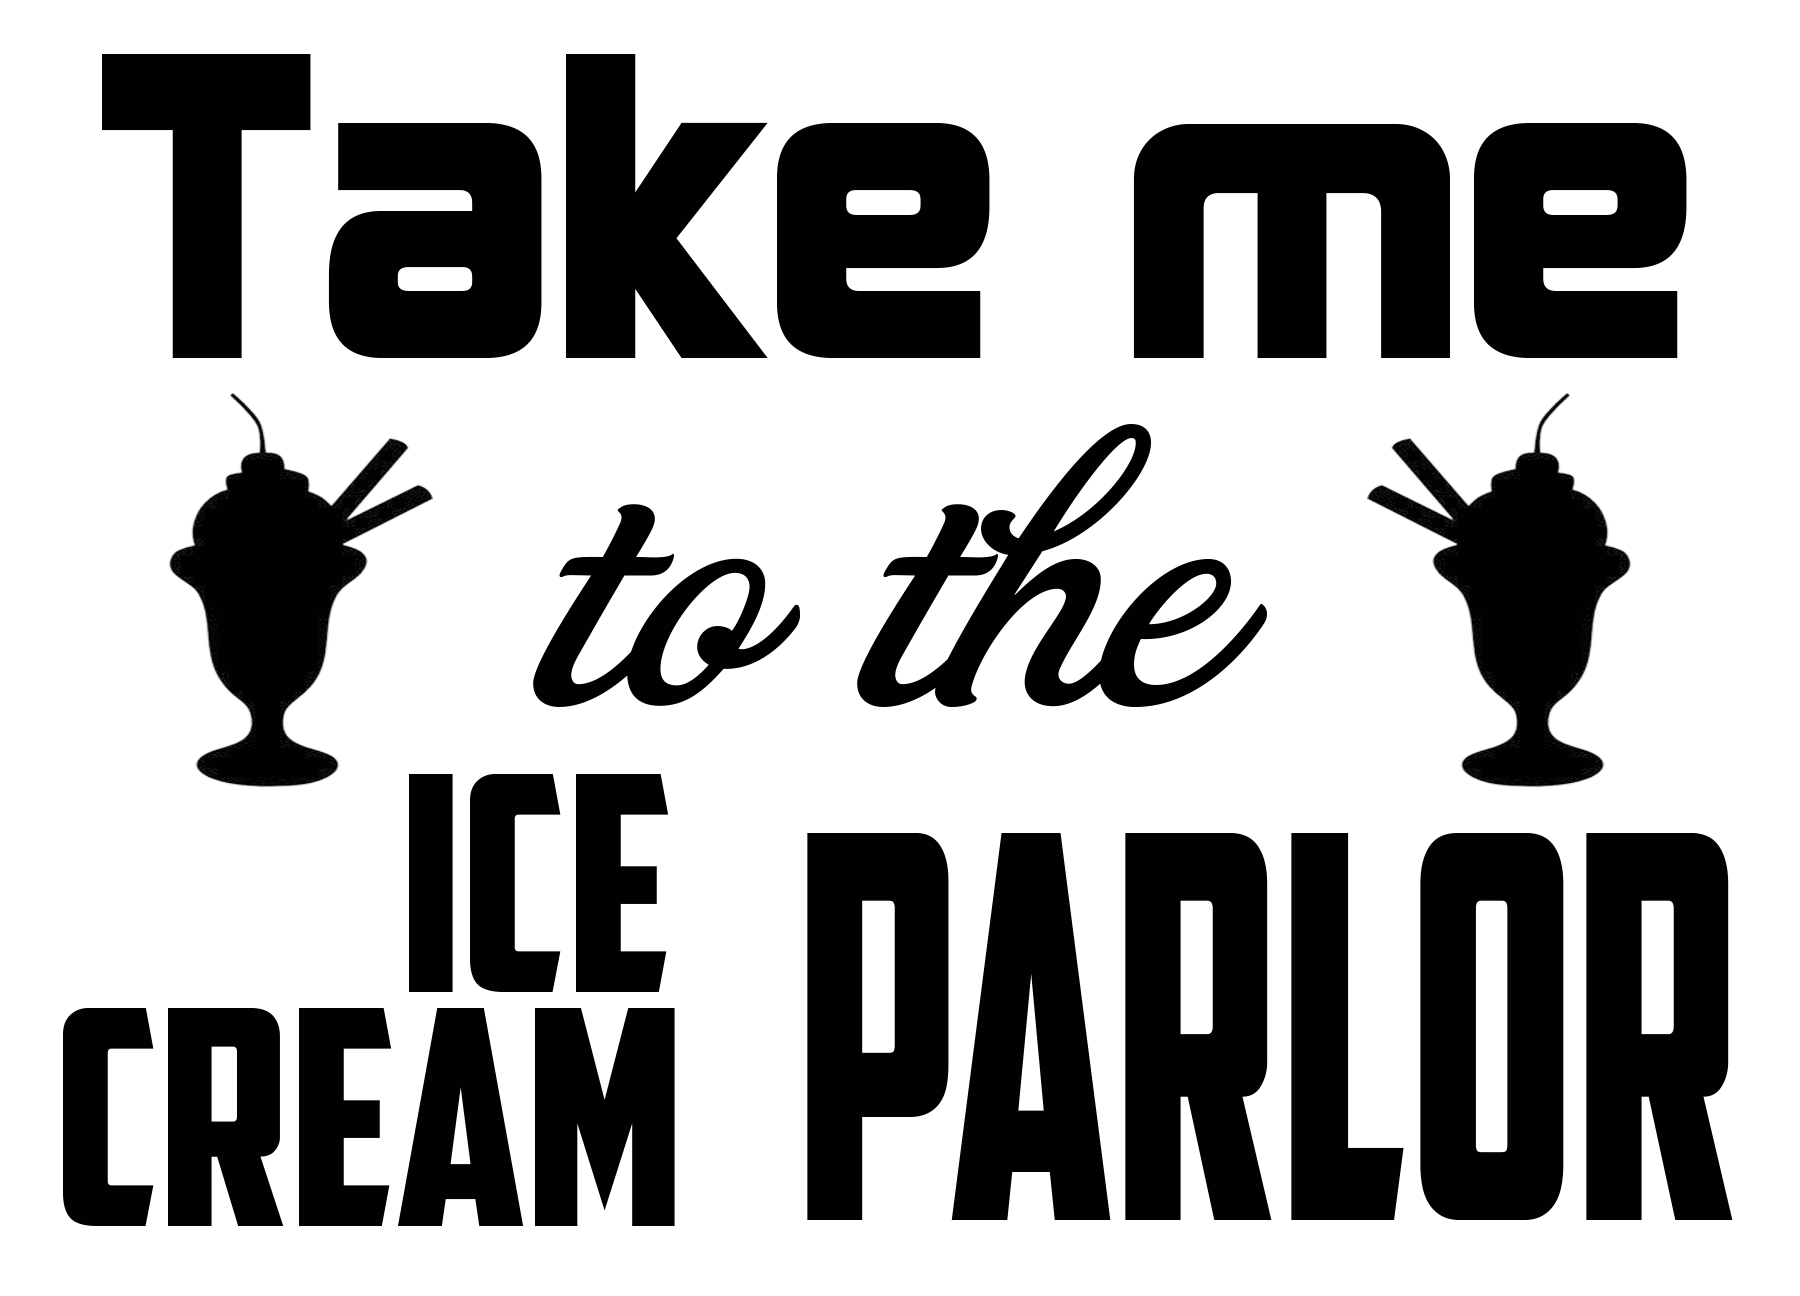 Free Ice Cream Parlor SVG Cutting File